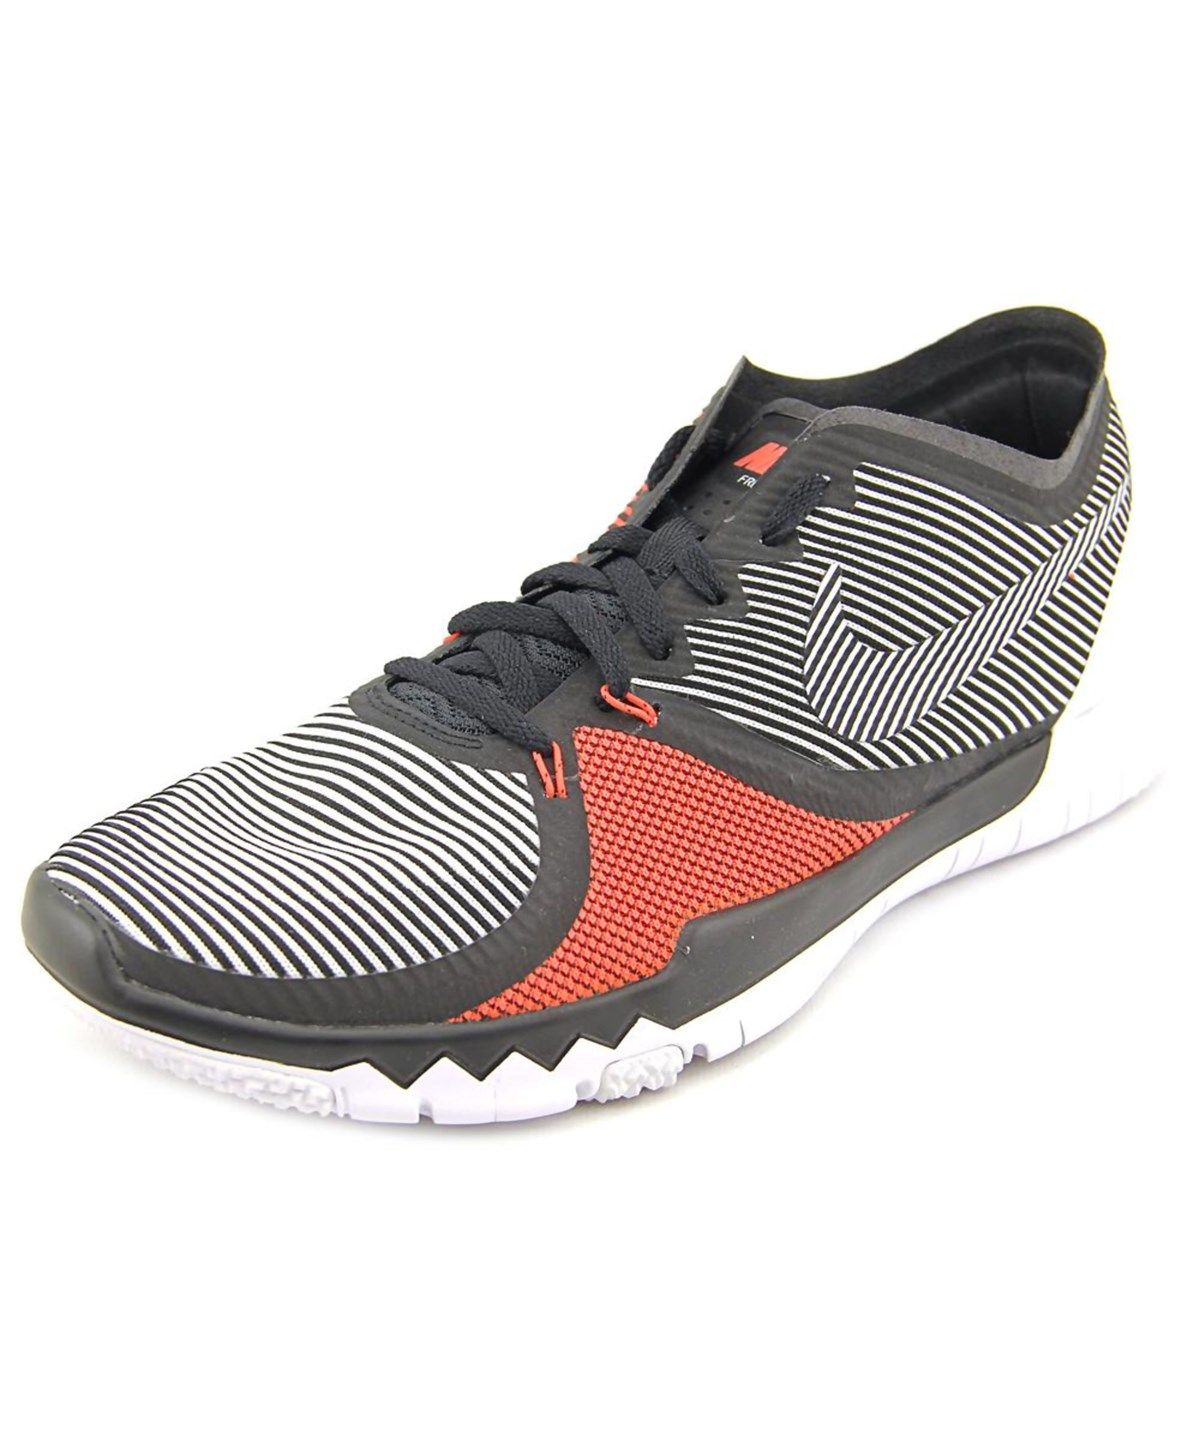 NIKE NIKE FREE TRAINER 3.0 V4 MEN ROUND TOE SYNTHETIC RUNNING SHOE'. #nike